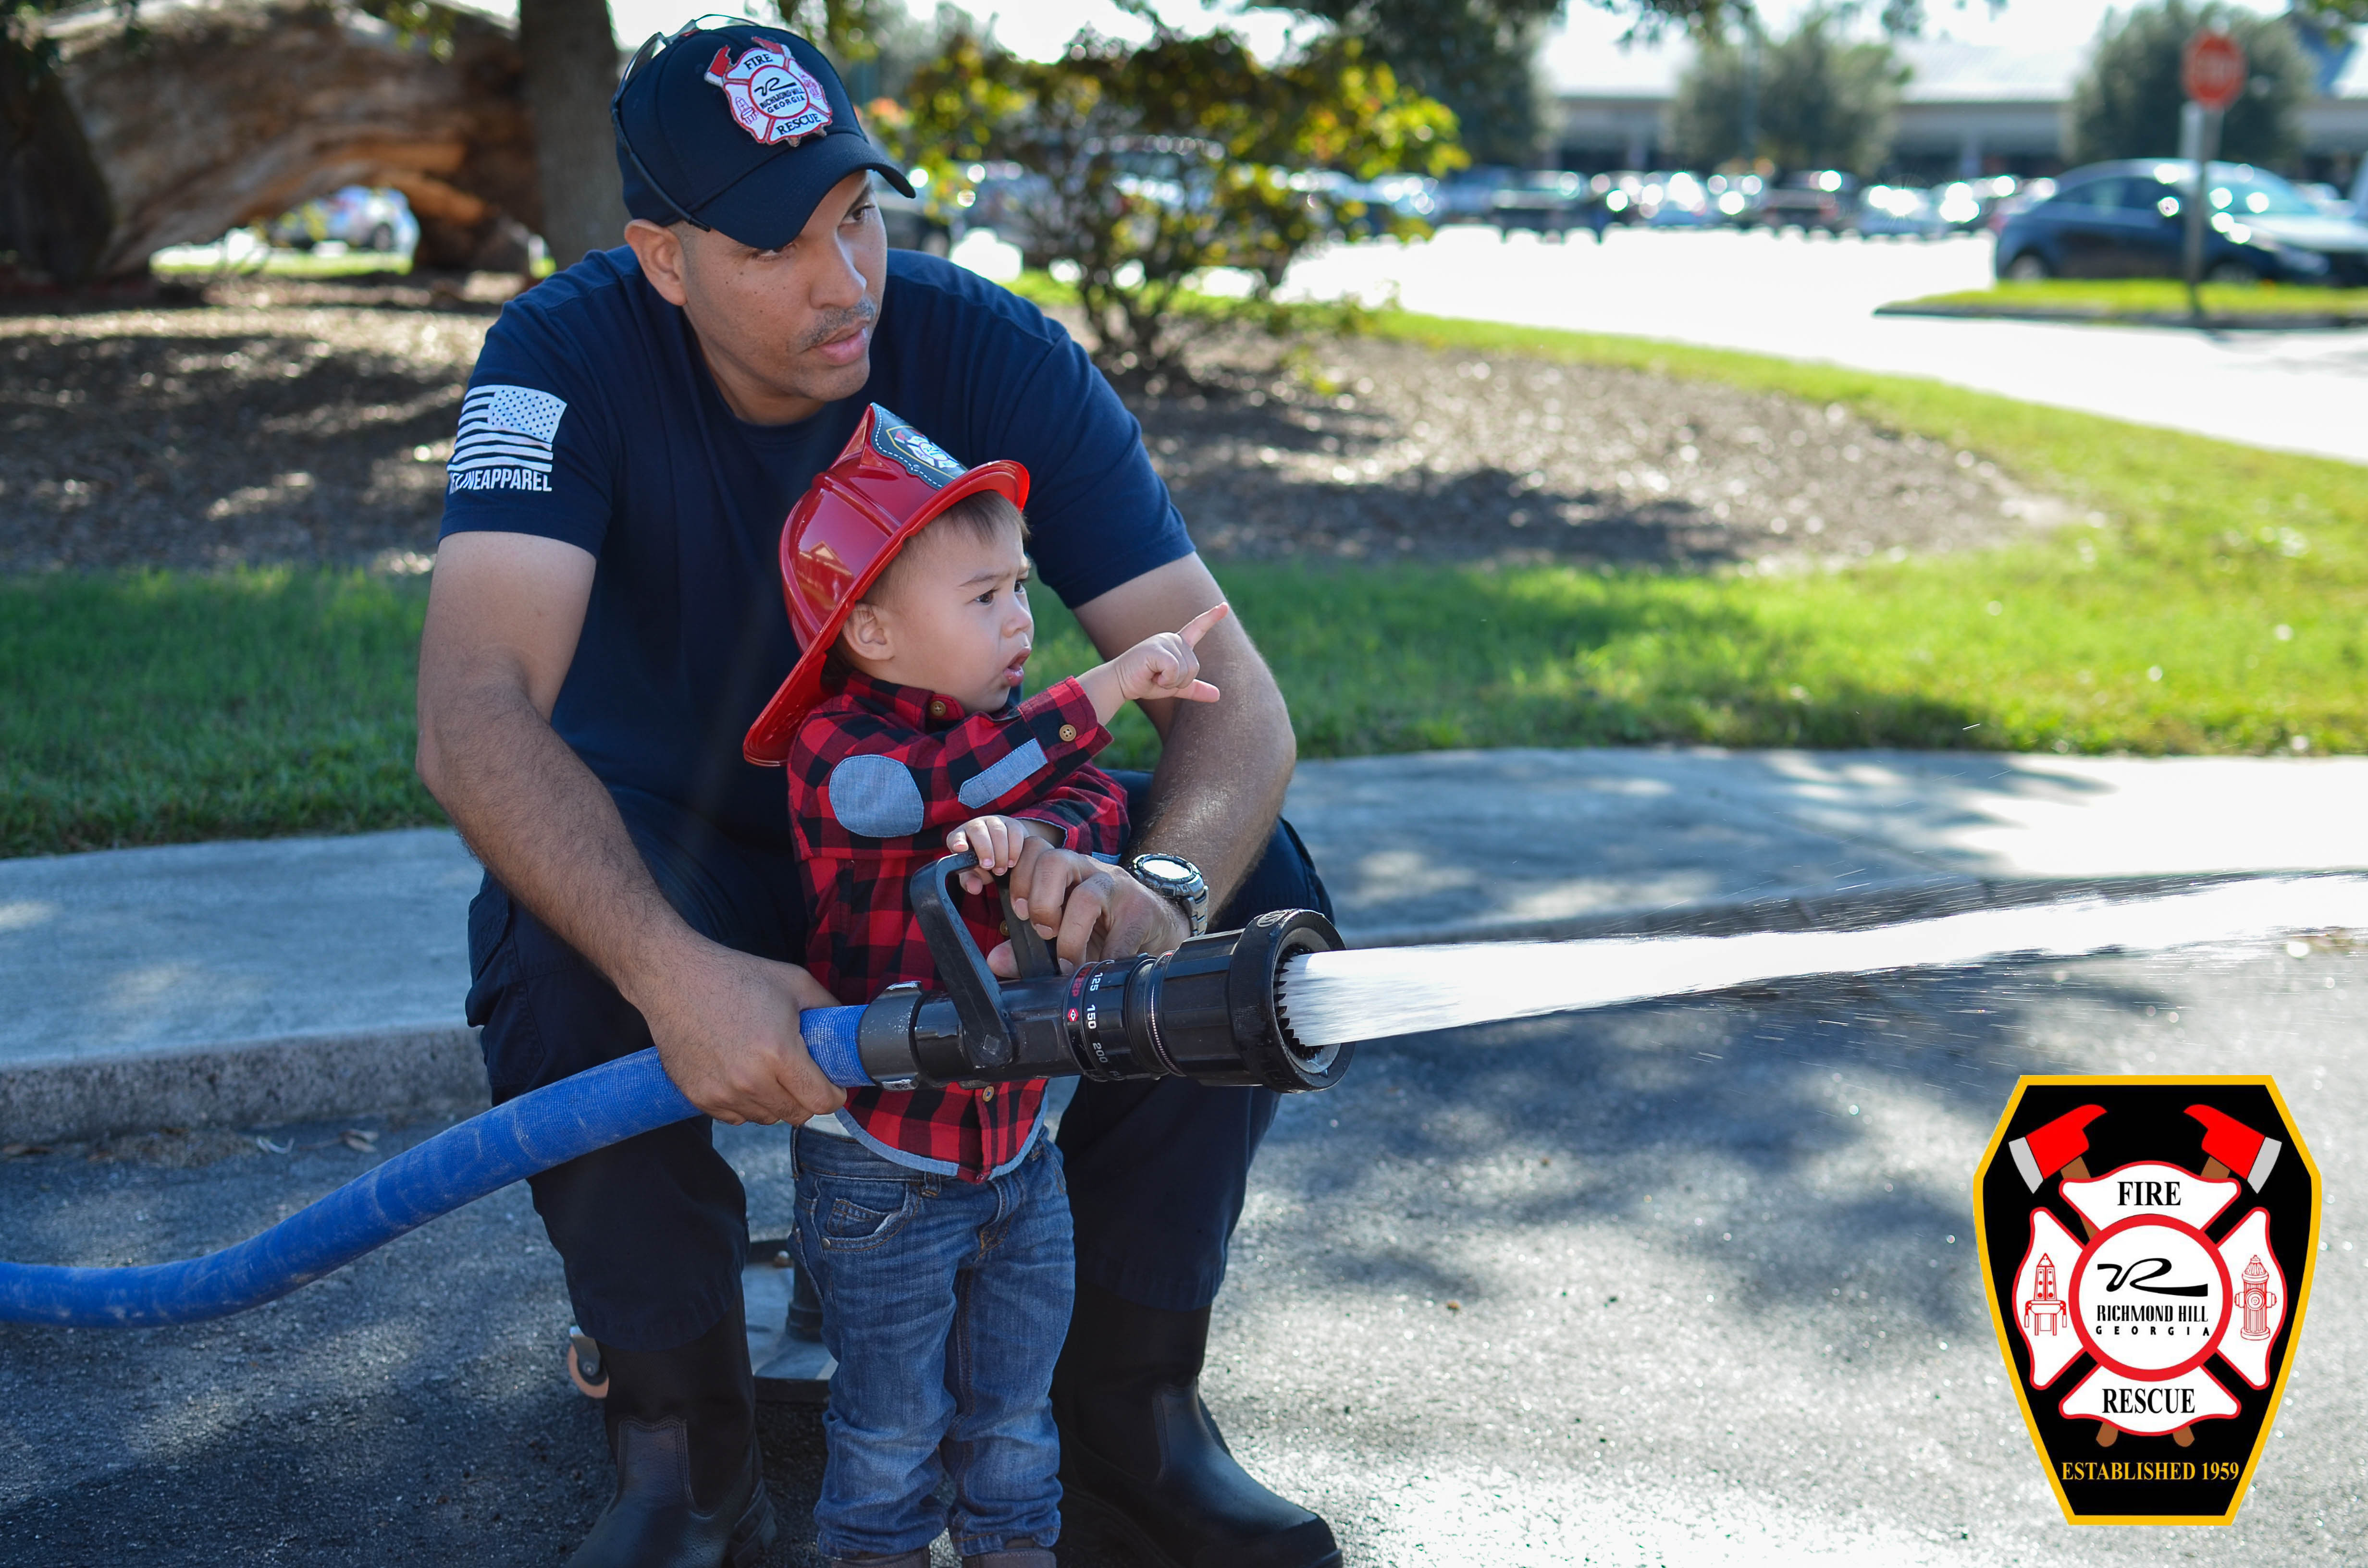 A fire fighter helps a child aim a water hose